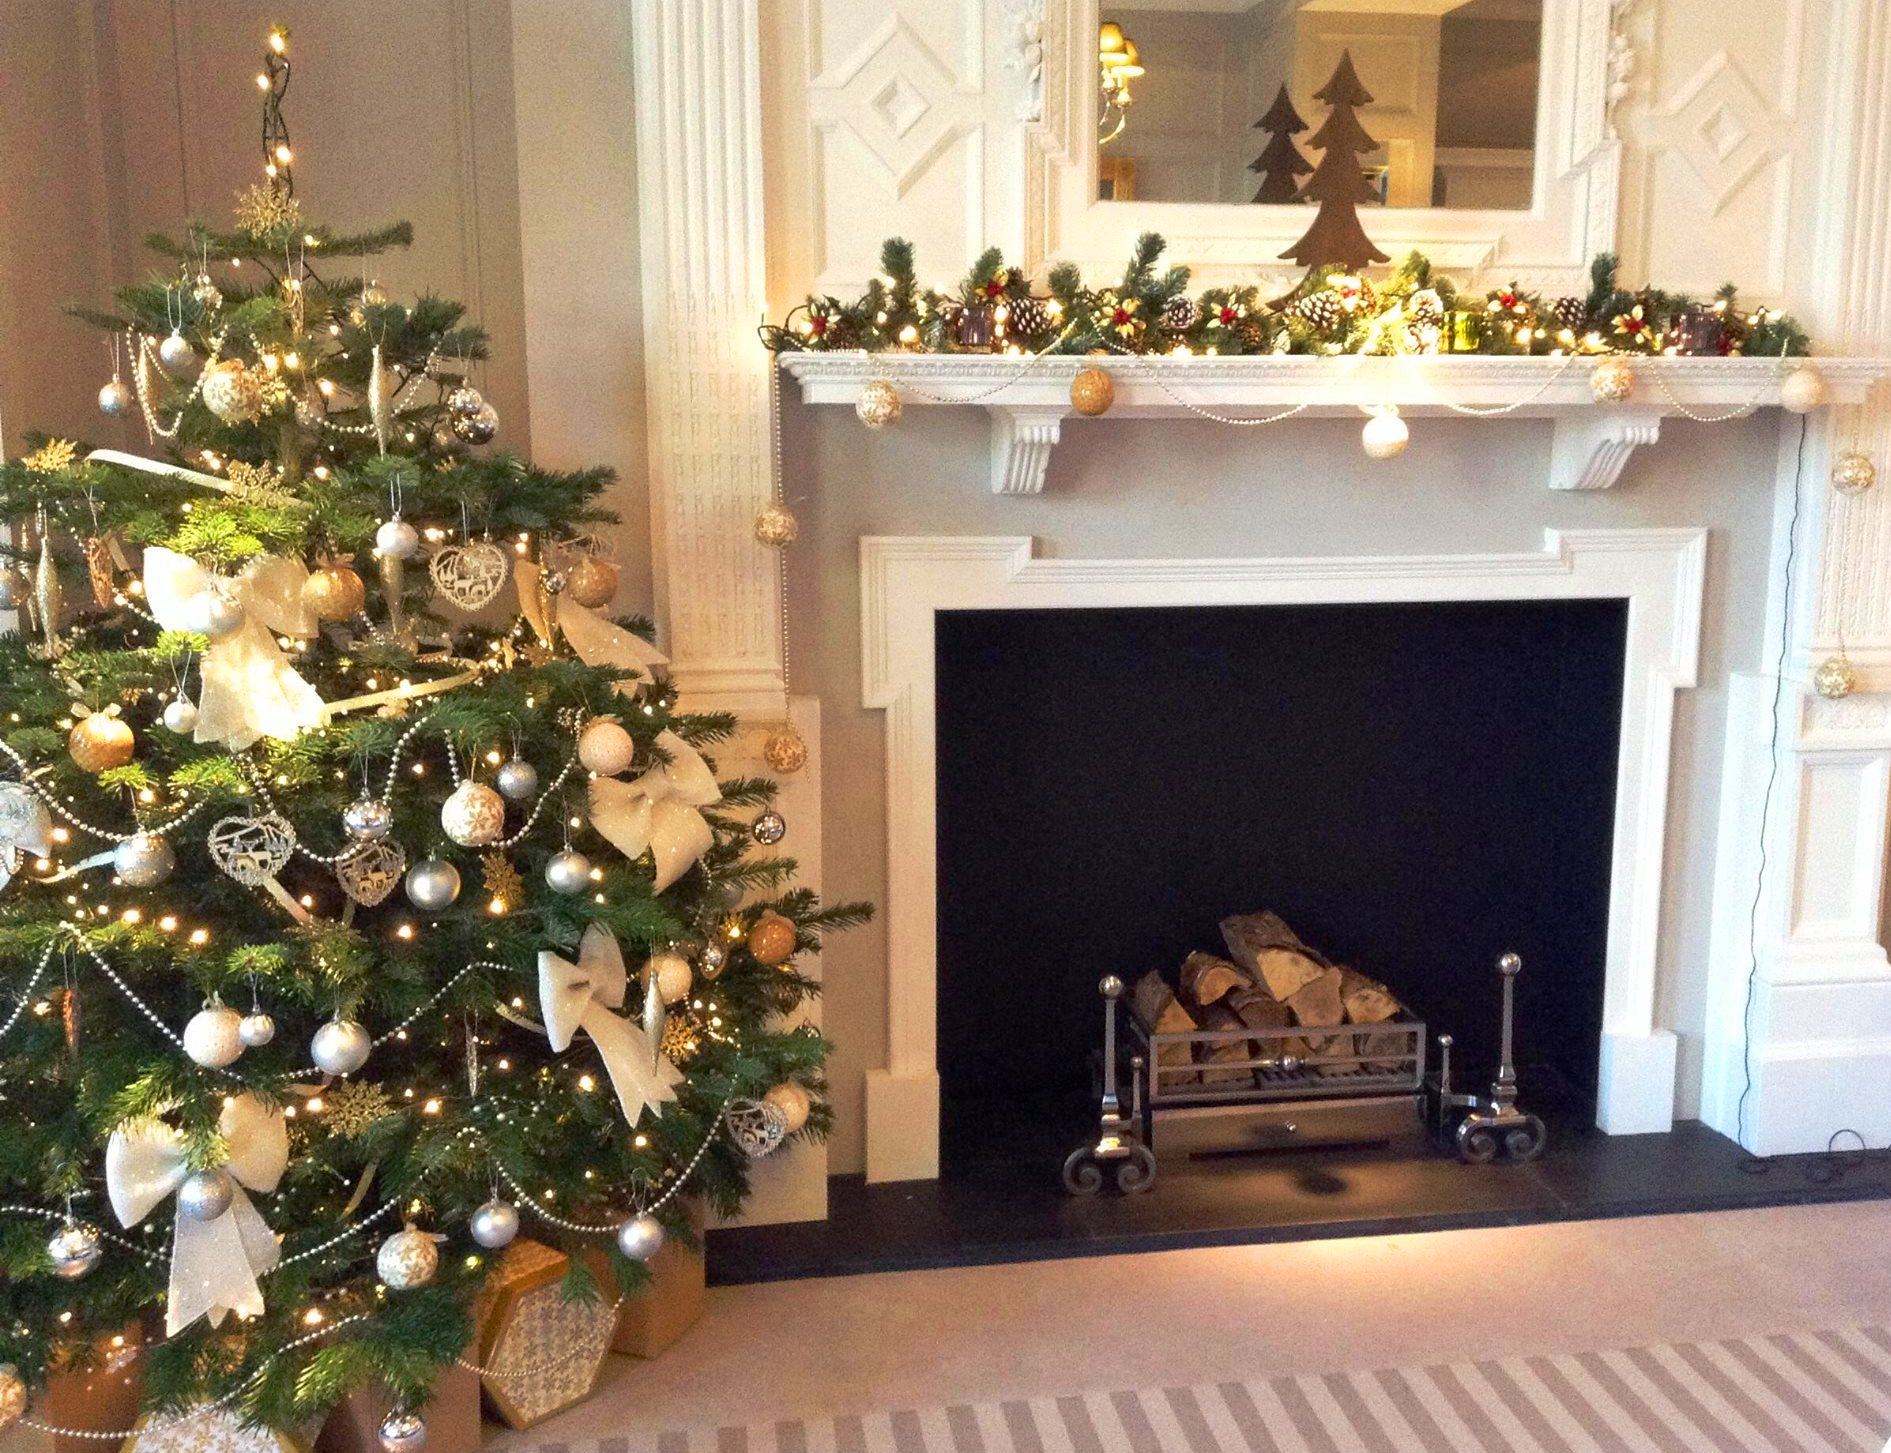 Christmas tree and fireplace garland from creations for Christmas garland on fireplace